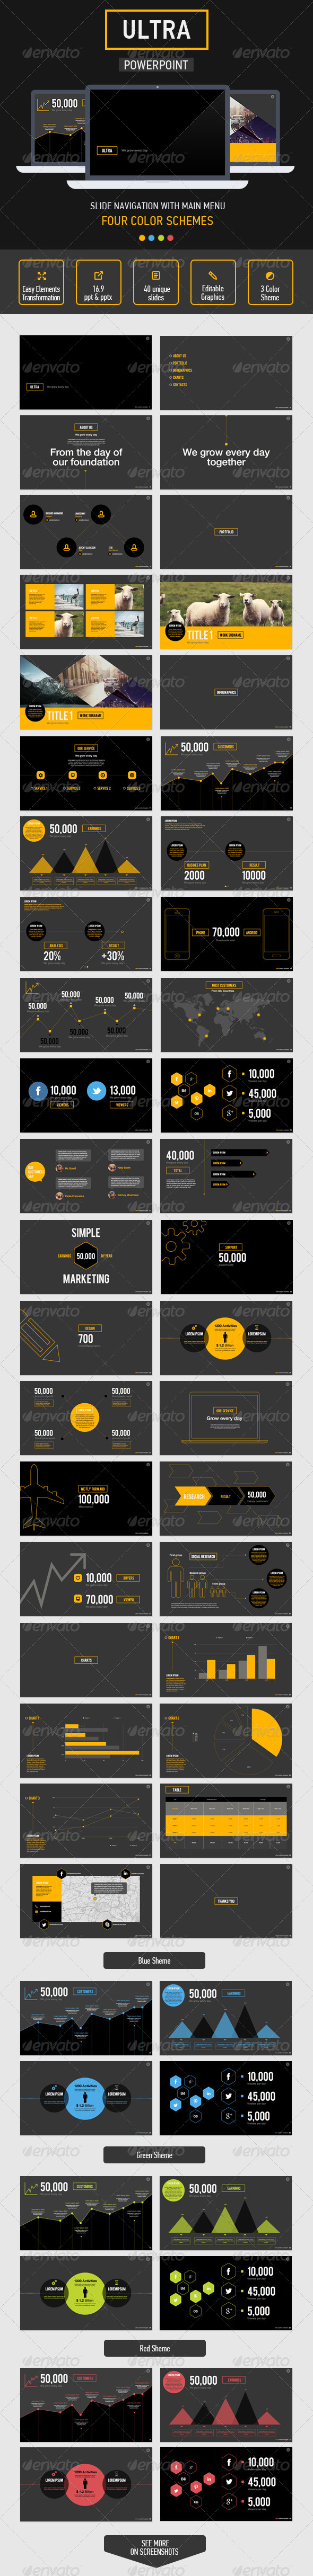 GraphicRiver Ultra PowerPoint Presentation Template 7157689